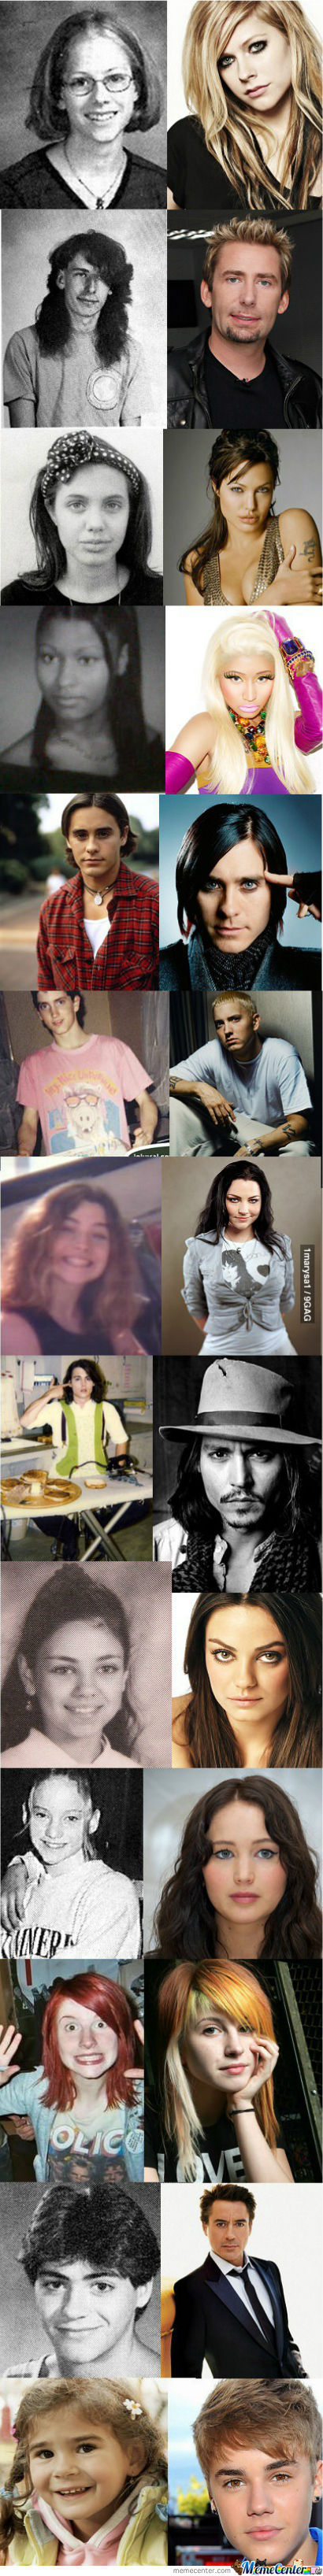 Famous People When They Were Young.